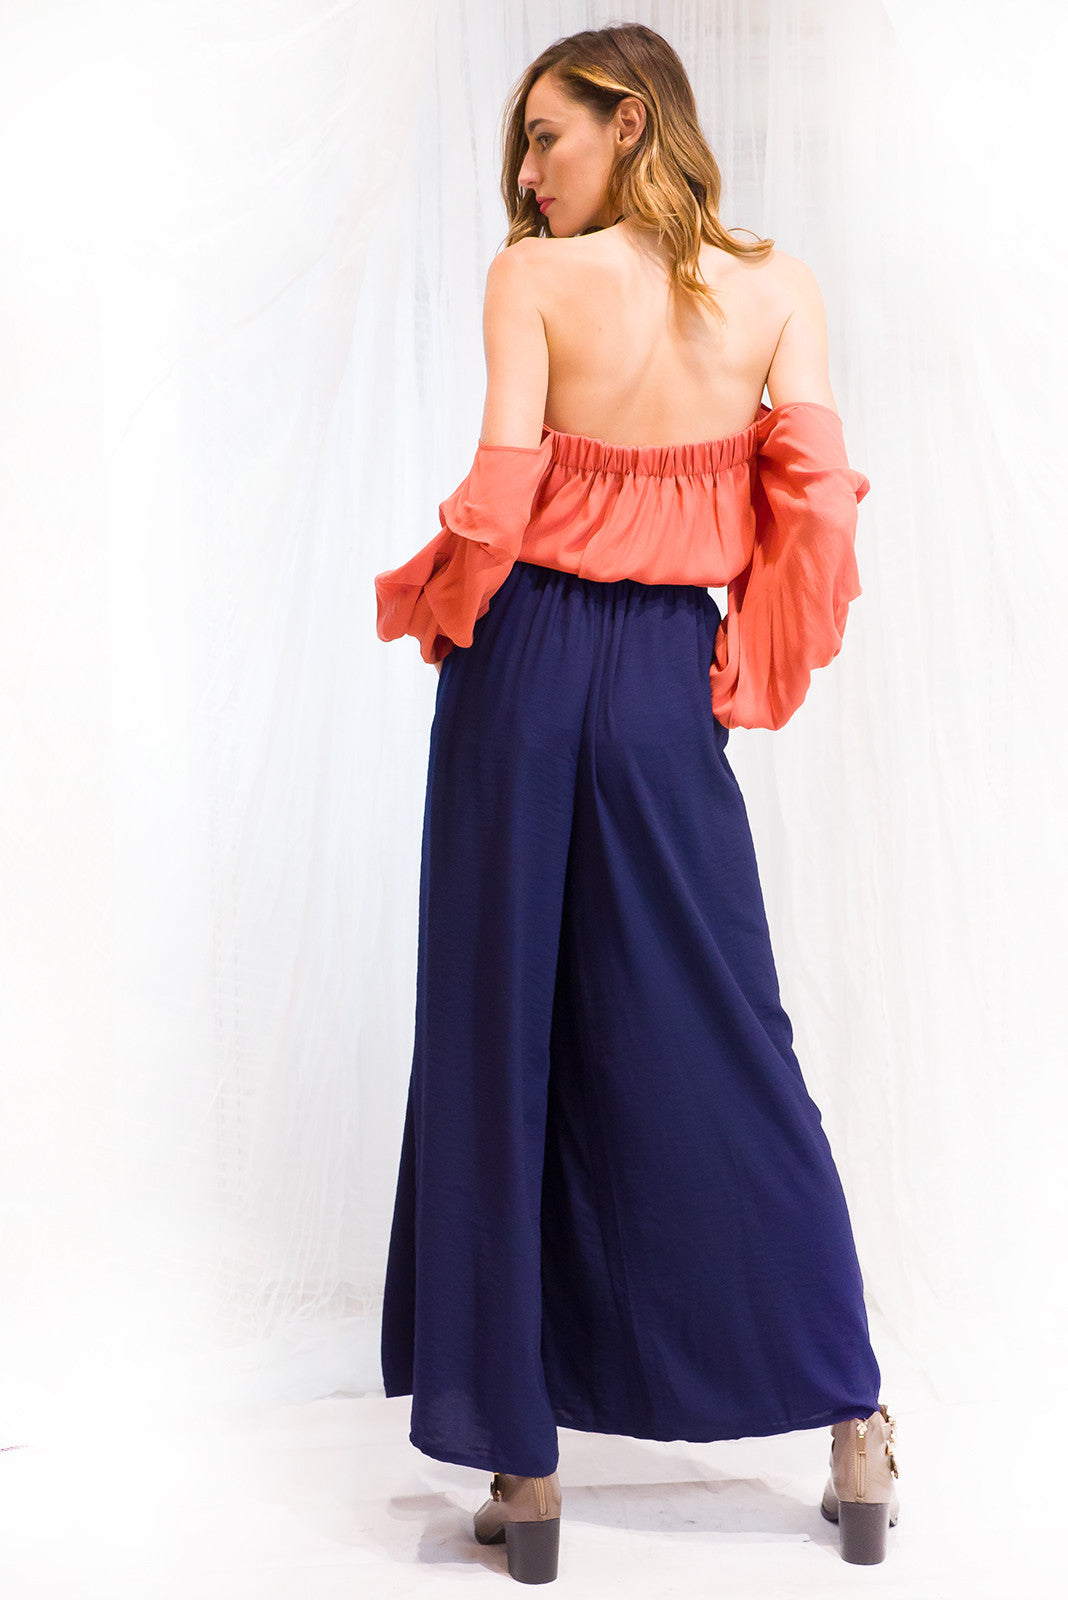 Milano Palazzo Wide Leg Pants in Navy, navy blue flare pants